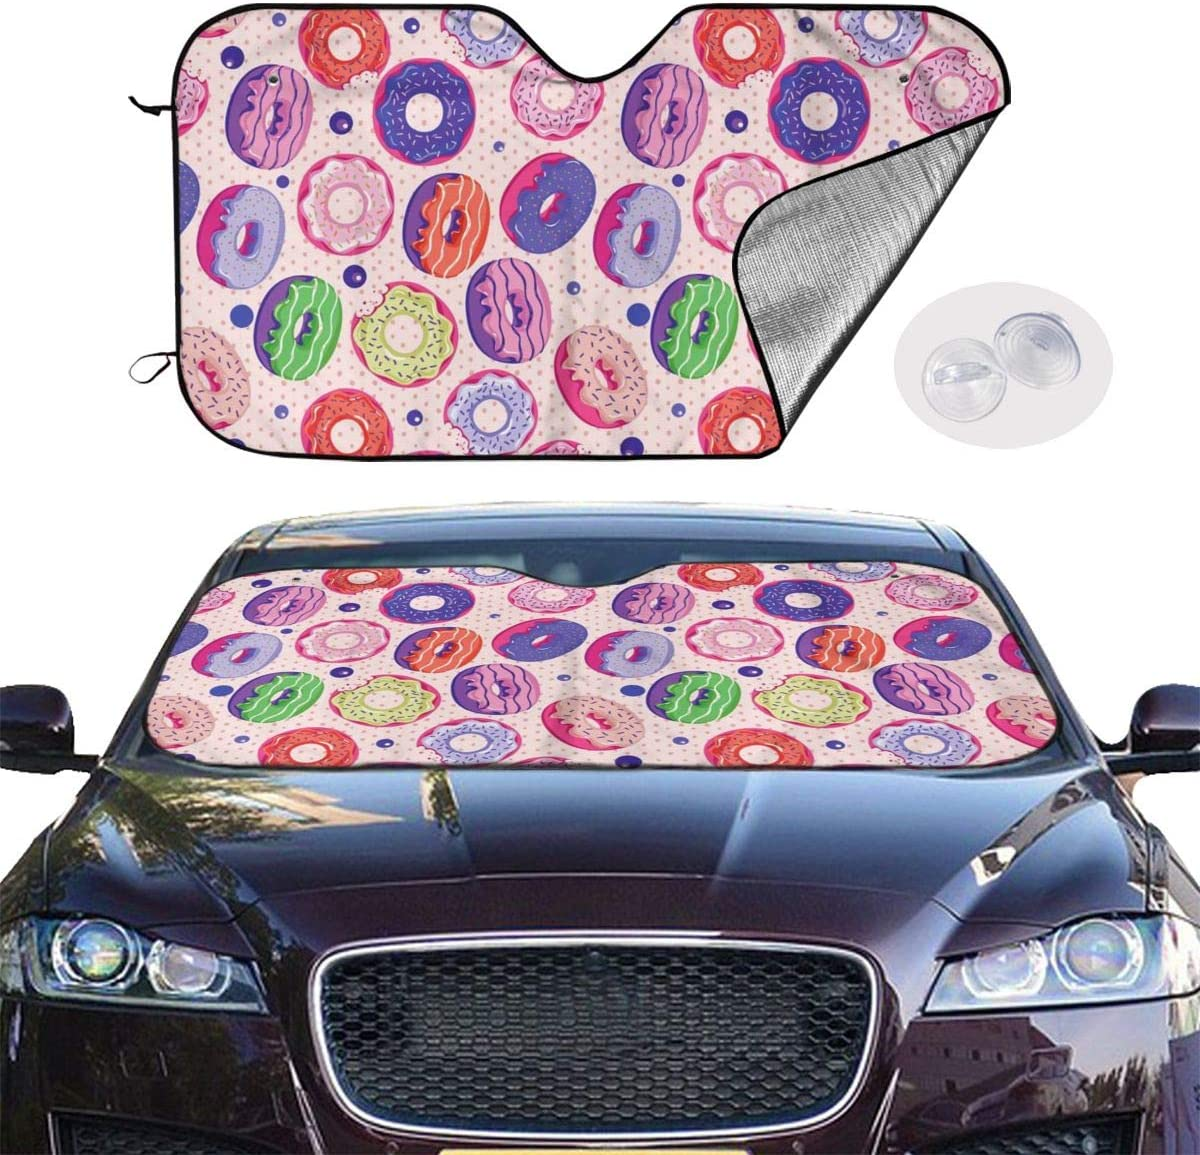 Winter Summer Earth Hand Visor Curtain All Season Protection Fits for Most Vehicles Universal Fit Windshield Sunshades Cover for Cars